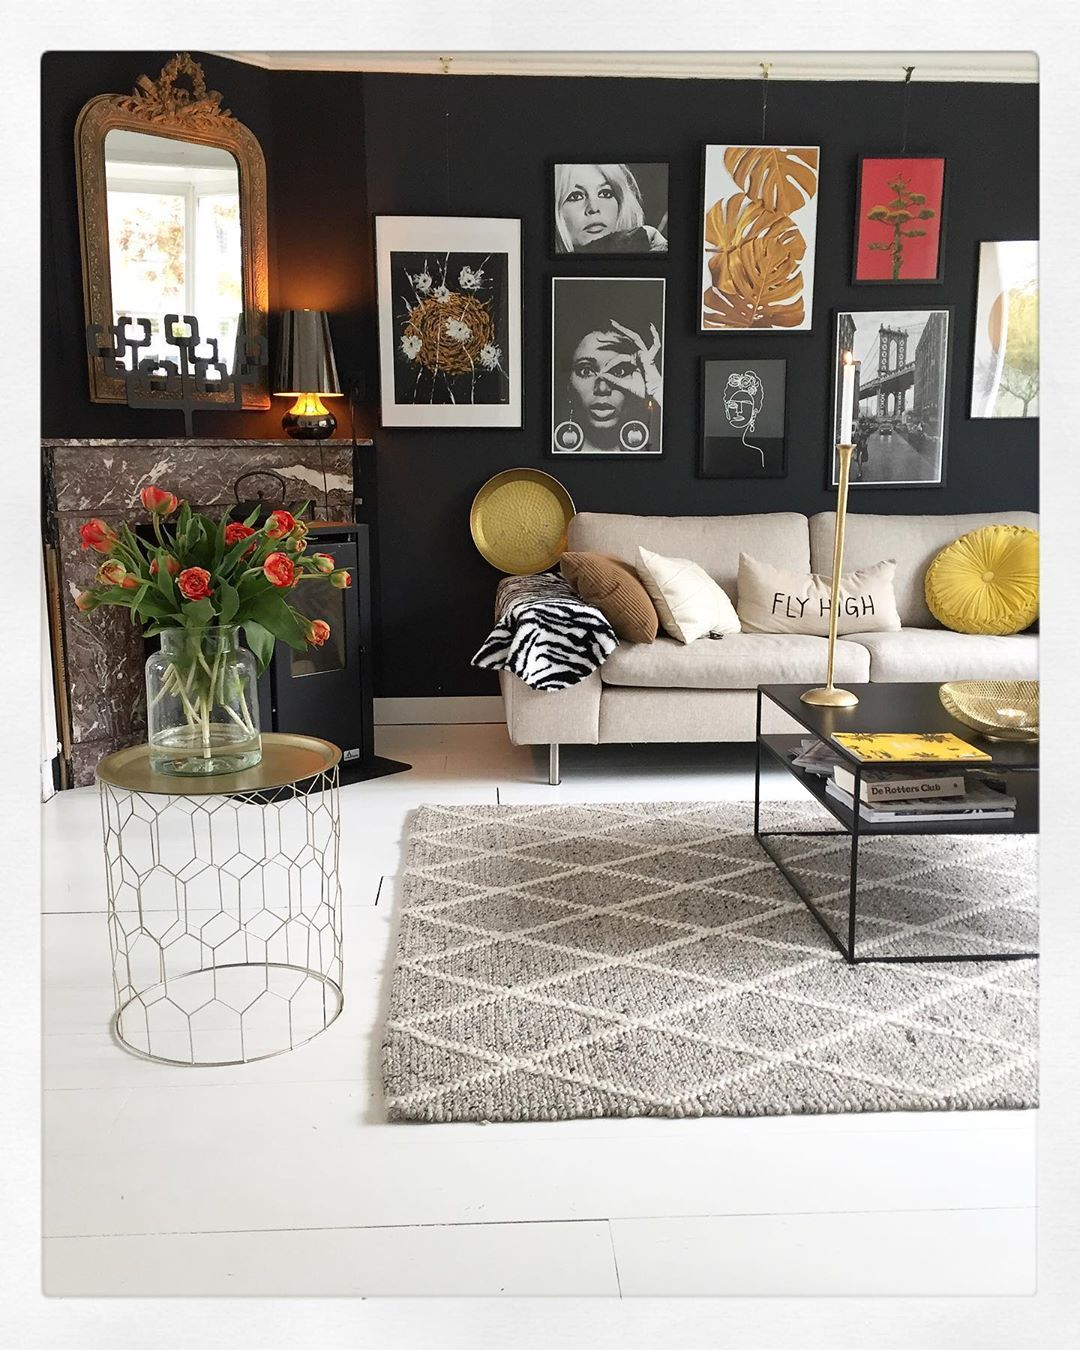 Dark Walls With A Bright Gallery Wall Cream Sofa And Indust